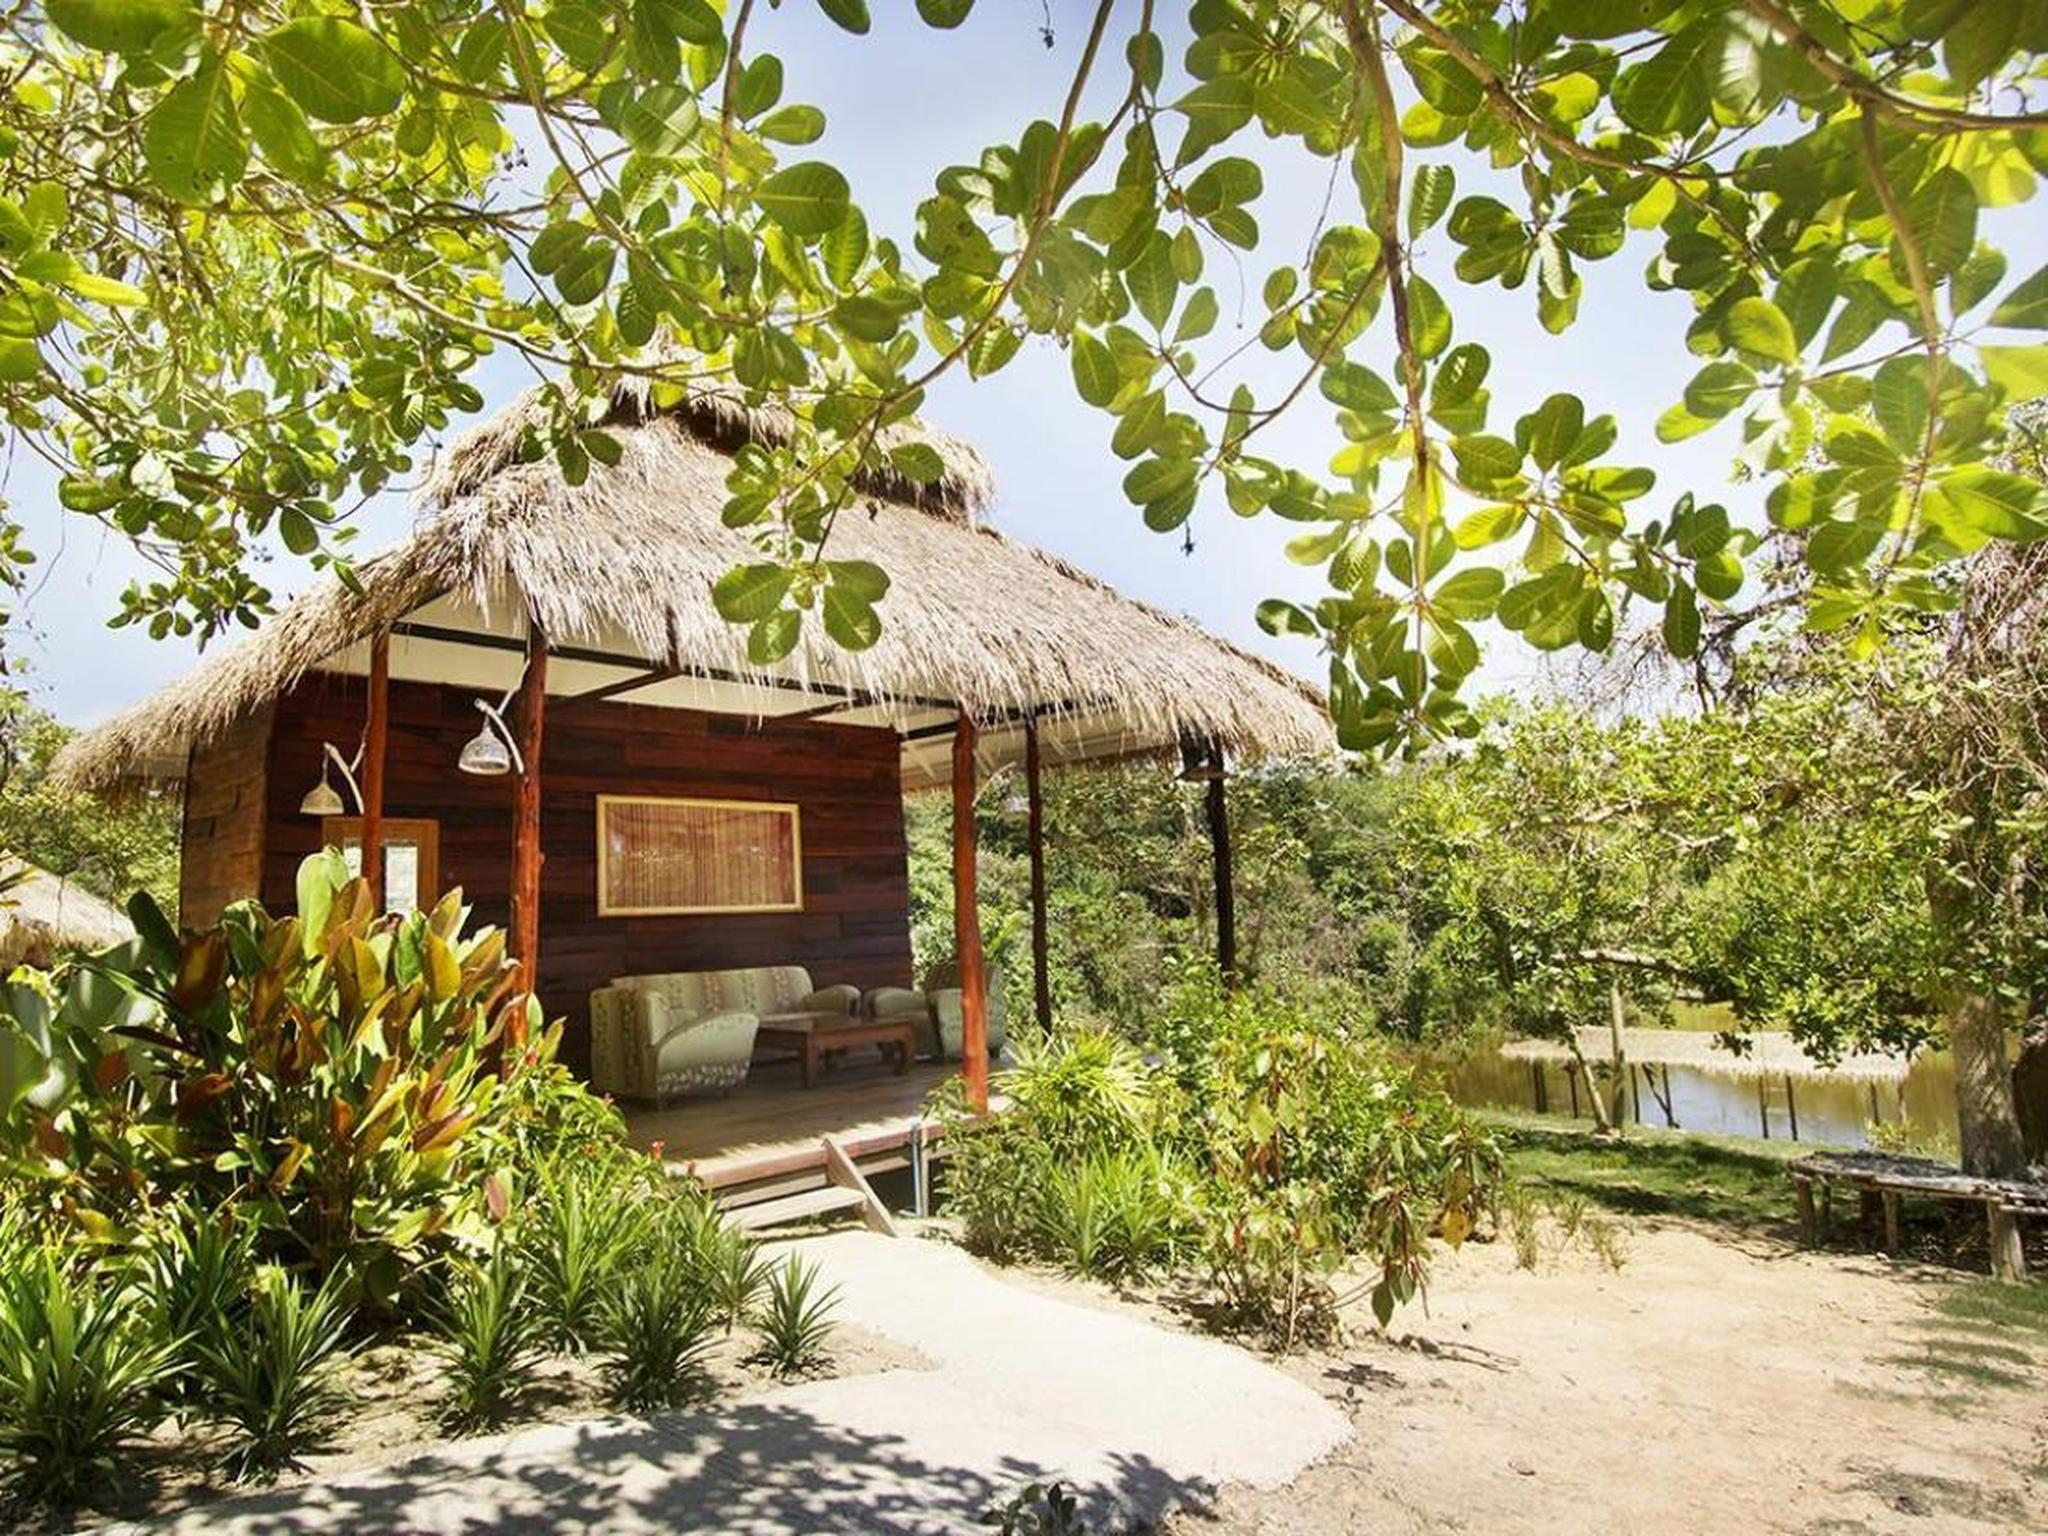 Deluxe Bamboo Bungalow